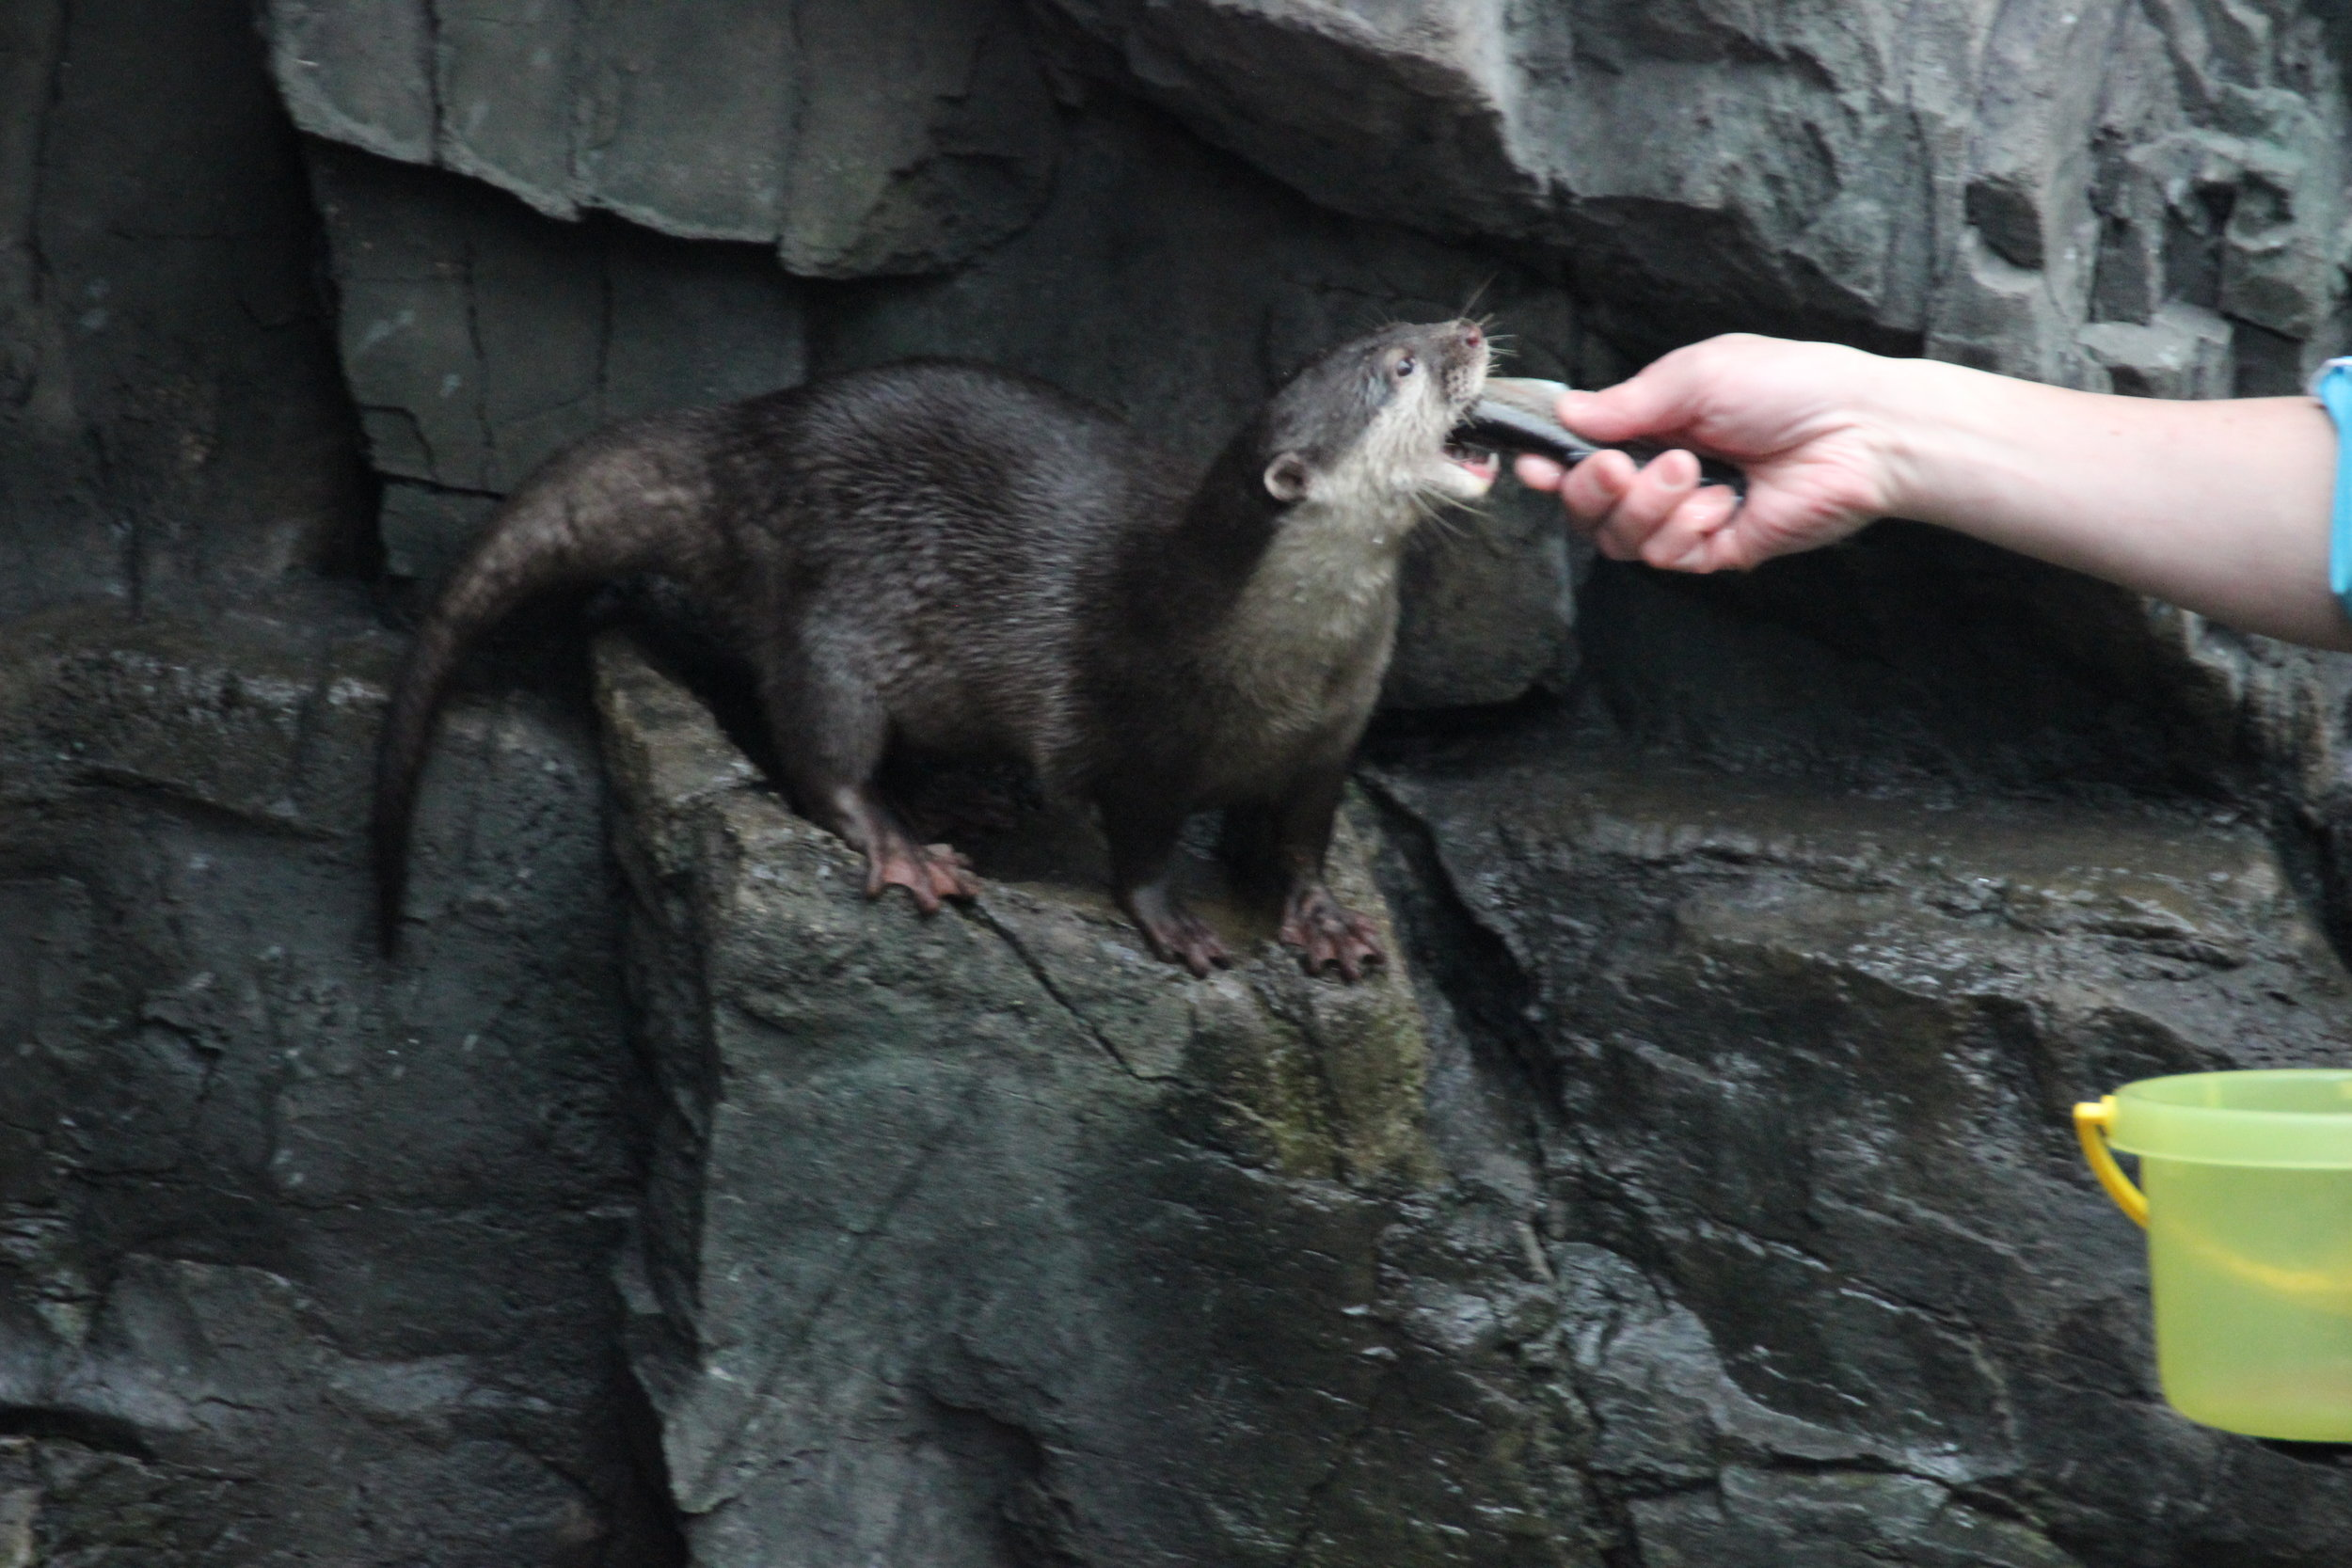 Pampered Otter Is Hand-Fed a Fish